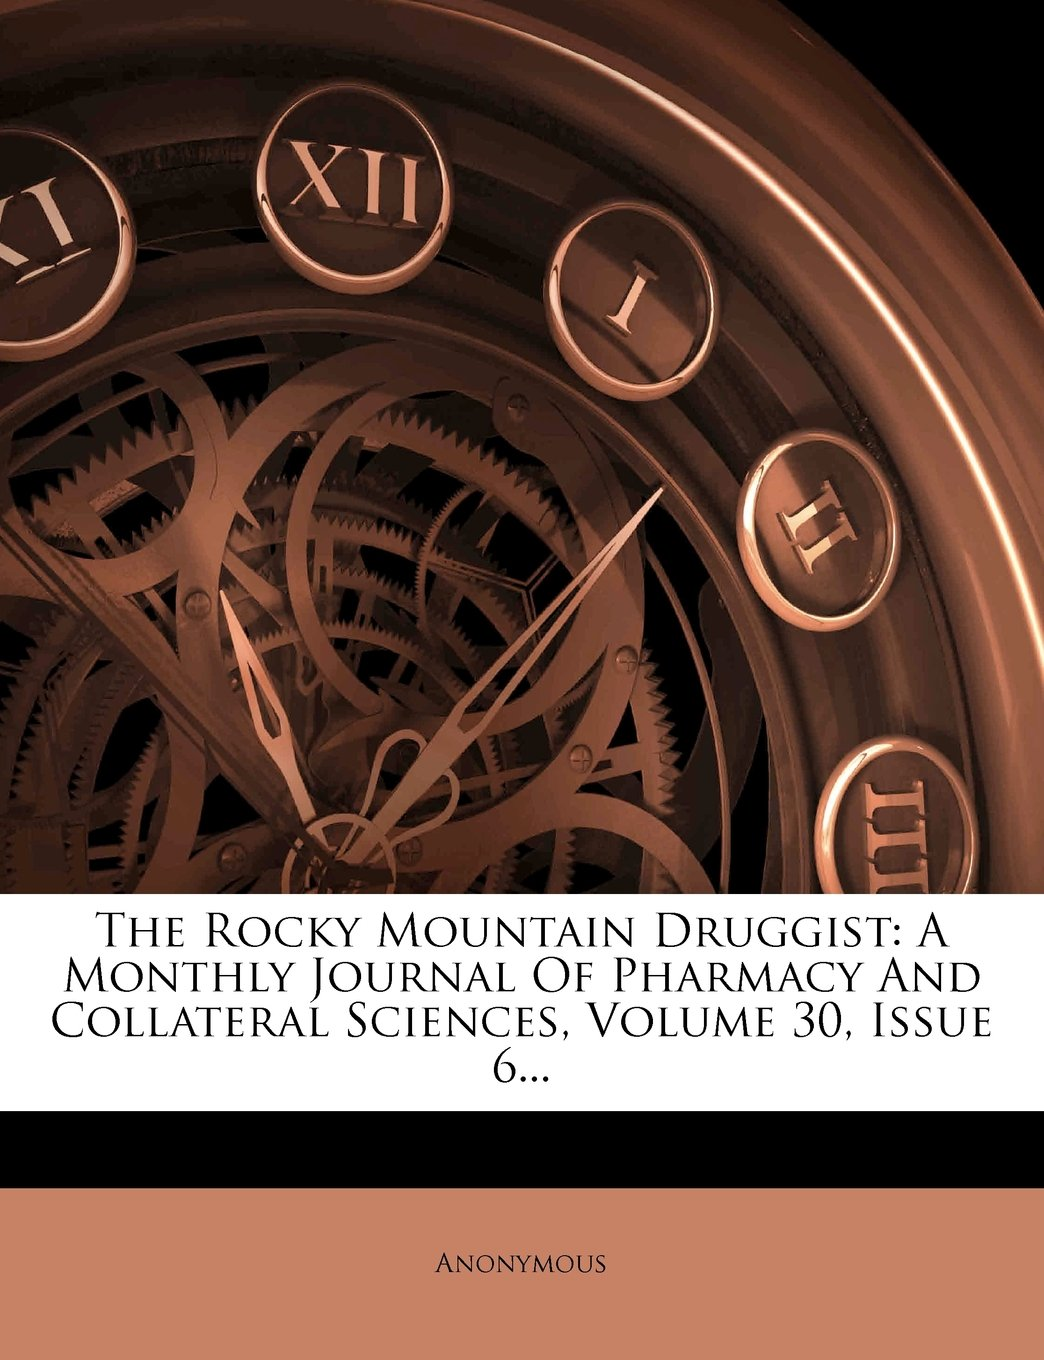 The Rocky Mountain Druggist: A Monthly Journal Of Pharmacy And Collateral Sciences, Volume 30, Issue 6... pdf